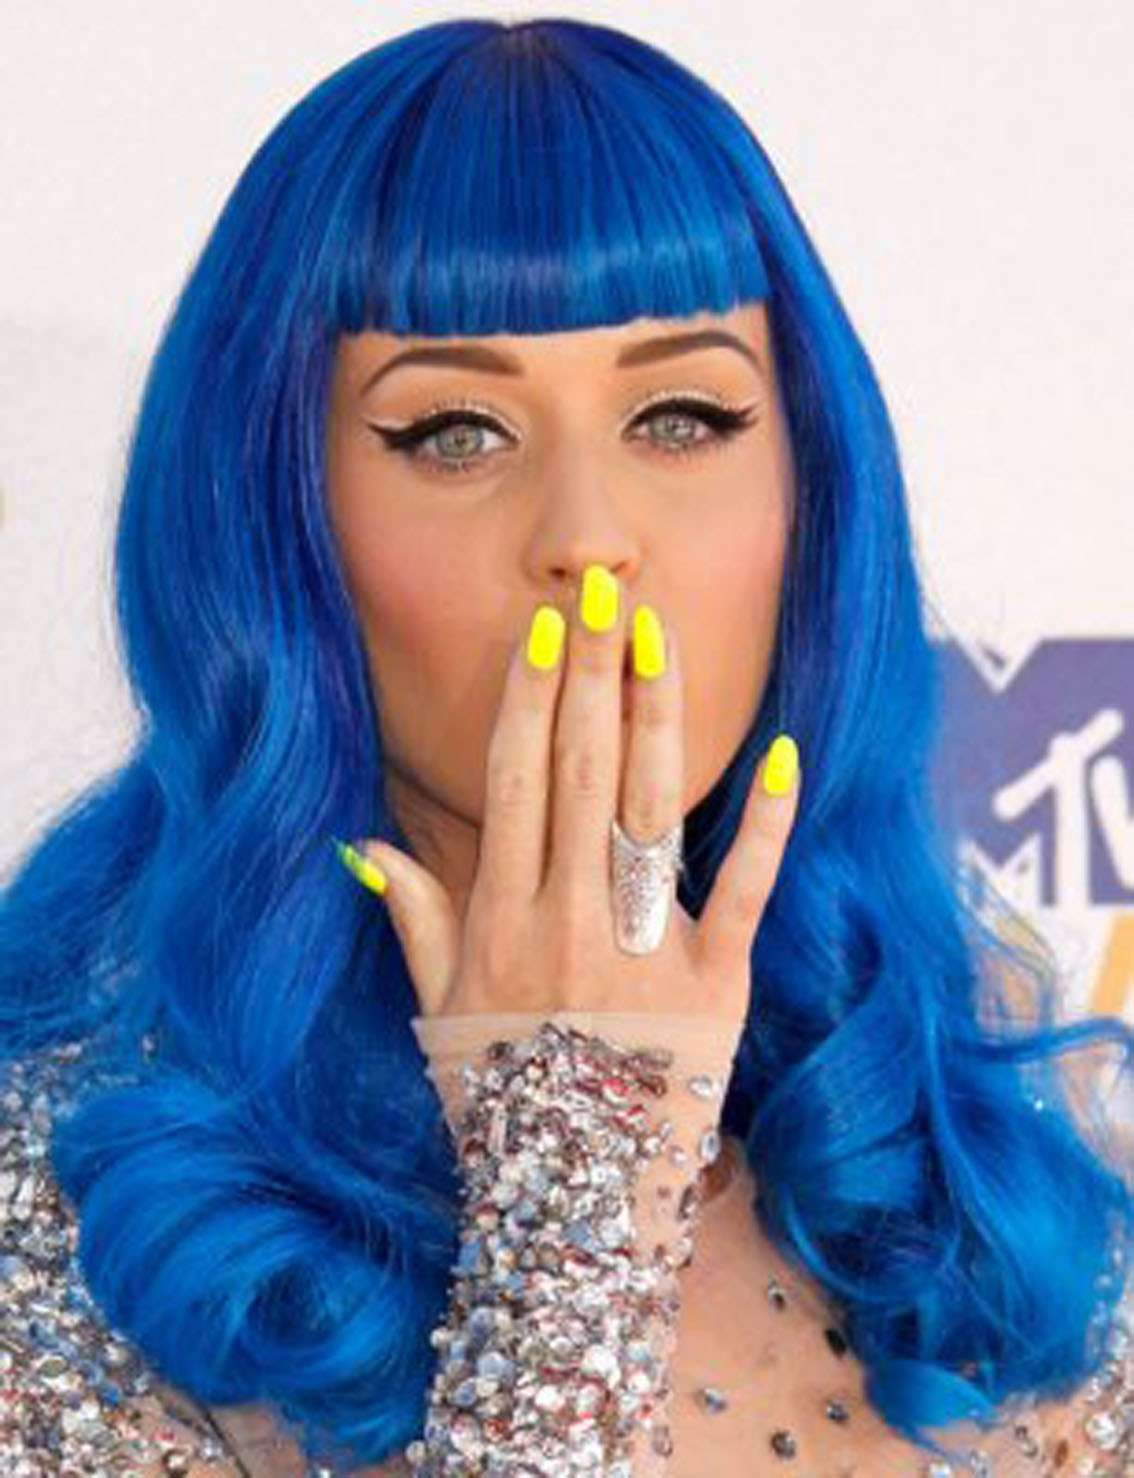 Smalto giallo per Katy Perry